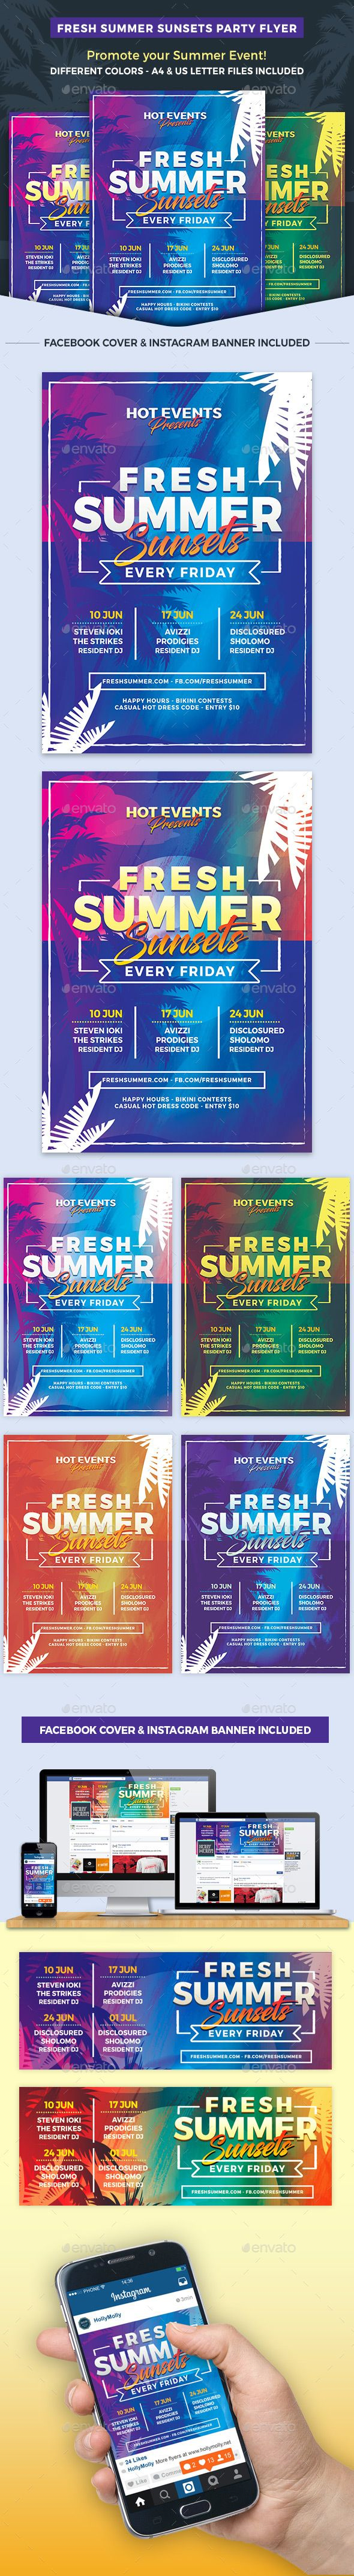 pin by best graphic design on awesome summer party flyers flyer